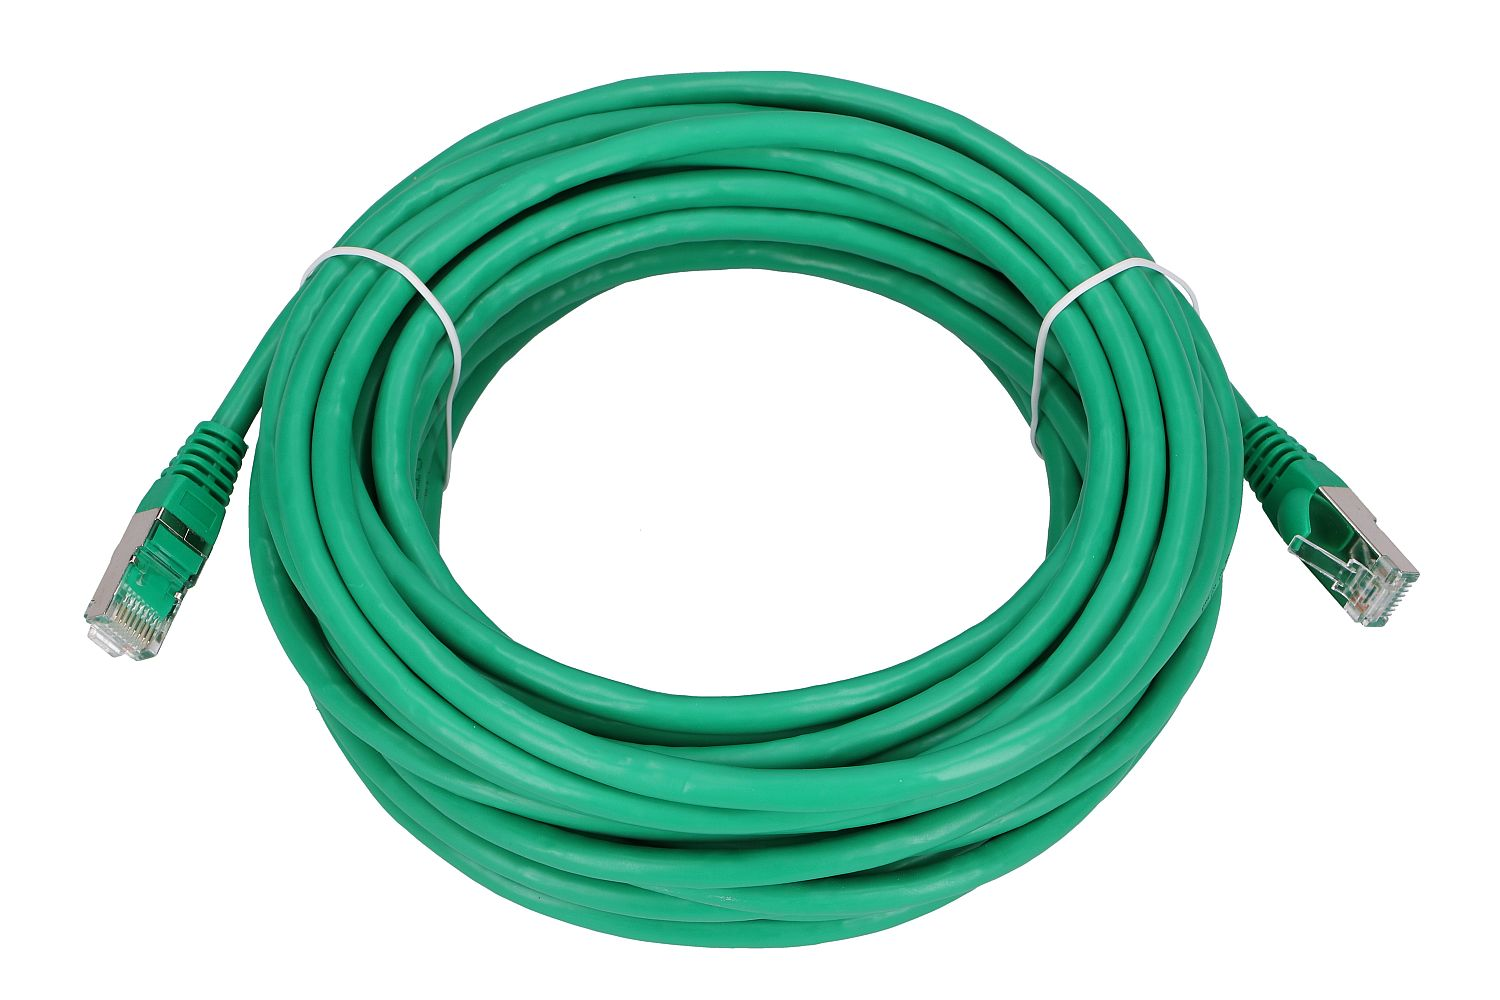 Extralink Kat.6 FTP 10m  LAN Patchcord Copper twisted pair, 1Gbps Green